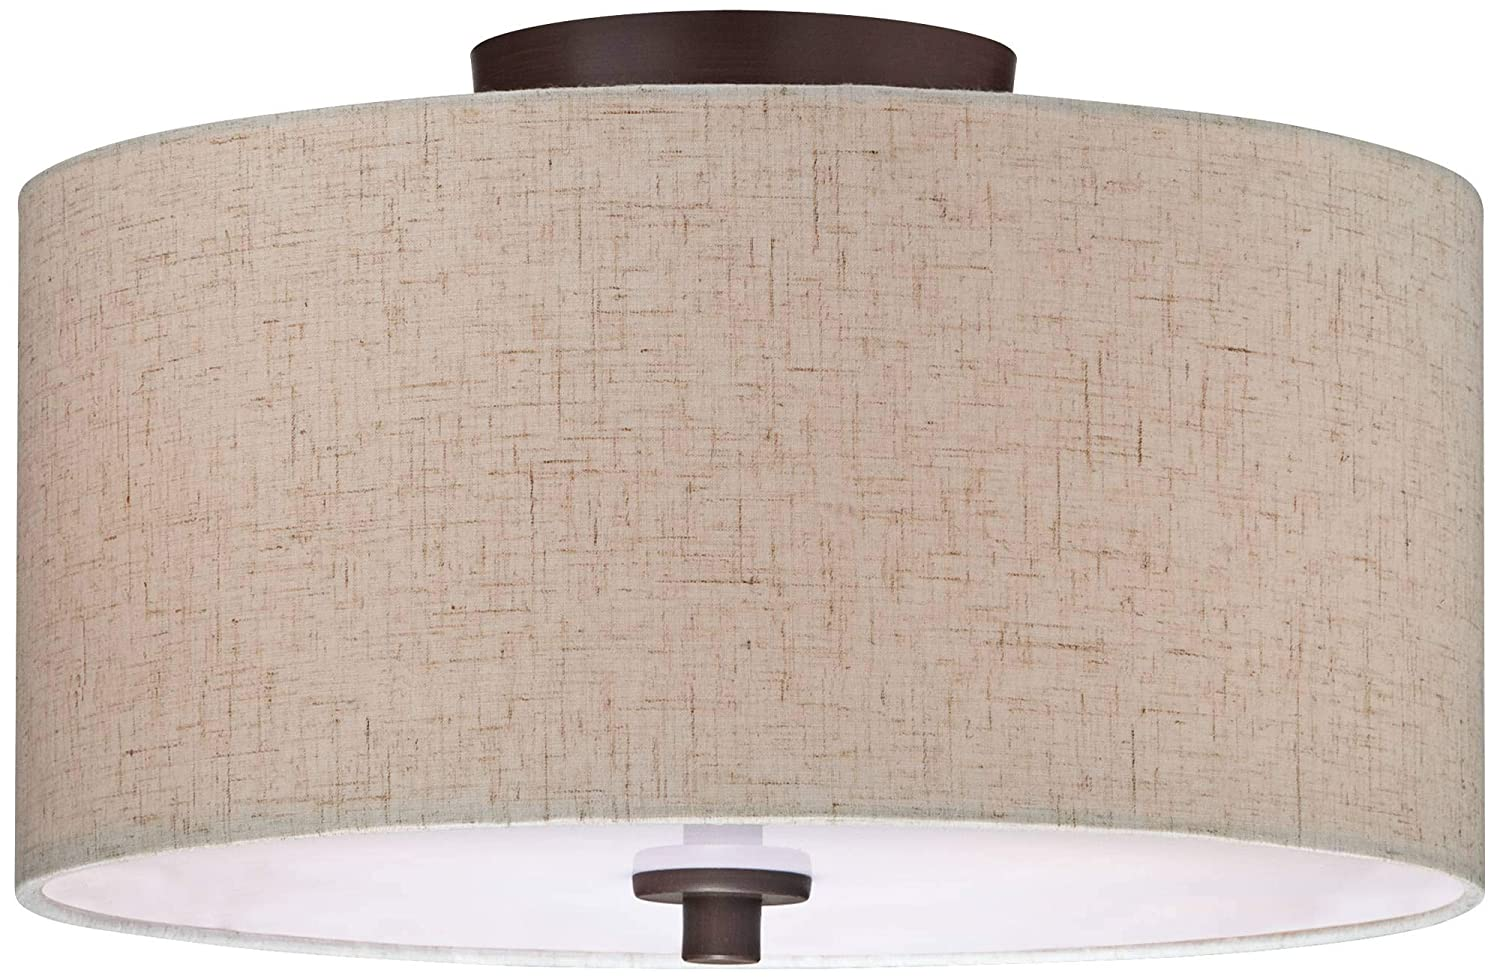 Sylvan 14 Wide Off-White Fabric Drum Ceiling Light – Regency Hill